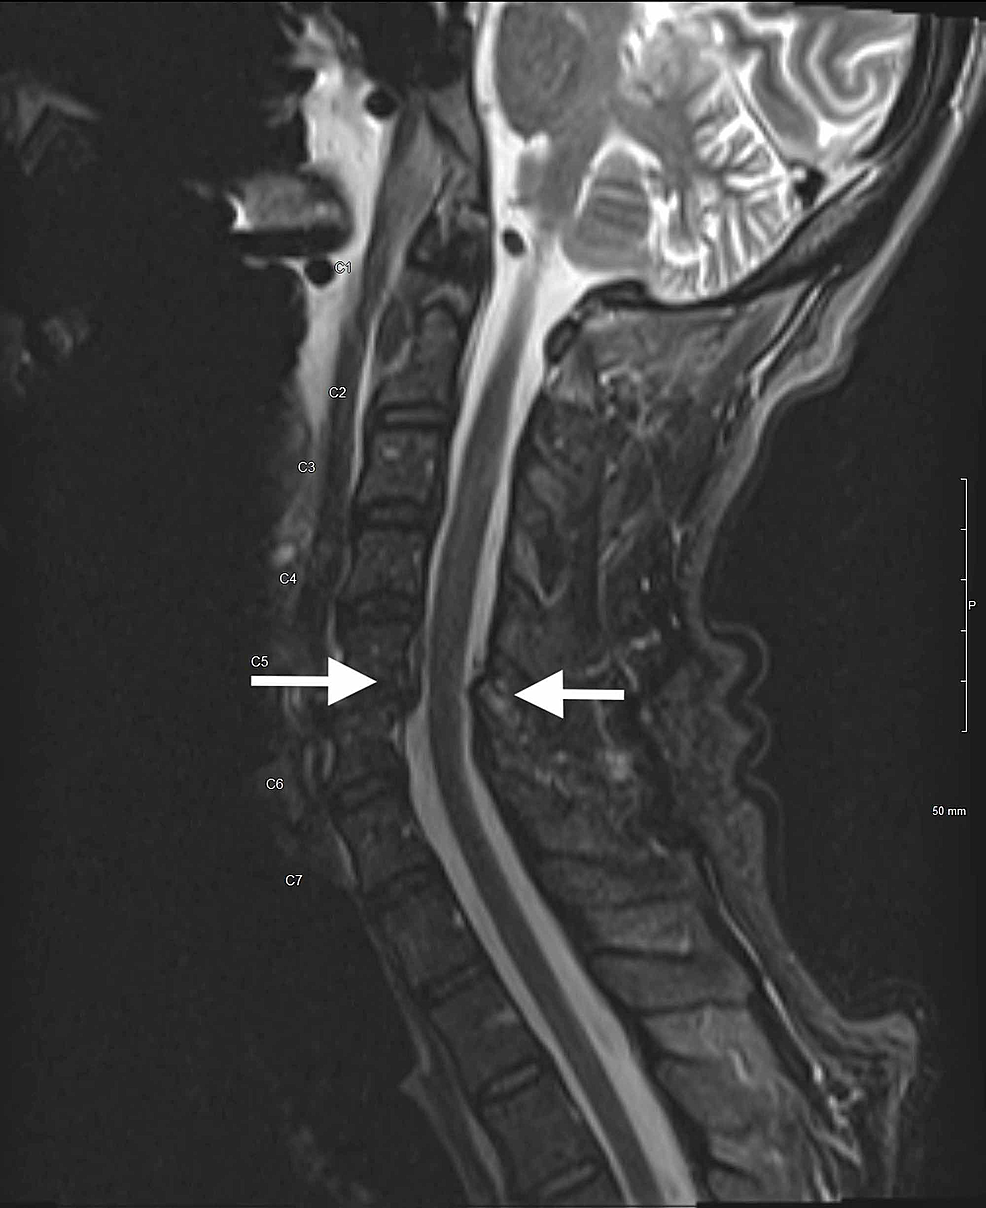 magnetic-resonance-imaging-of-the-cervical-spine-without-contrast-demonstrating-cervical-stenosis-at-C5-6-level-with-prevertebral-fluid-and-edema-(white-arrows)-consistent-with-Froin's-syndrome.